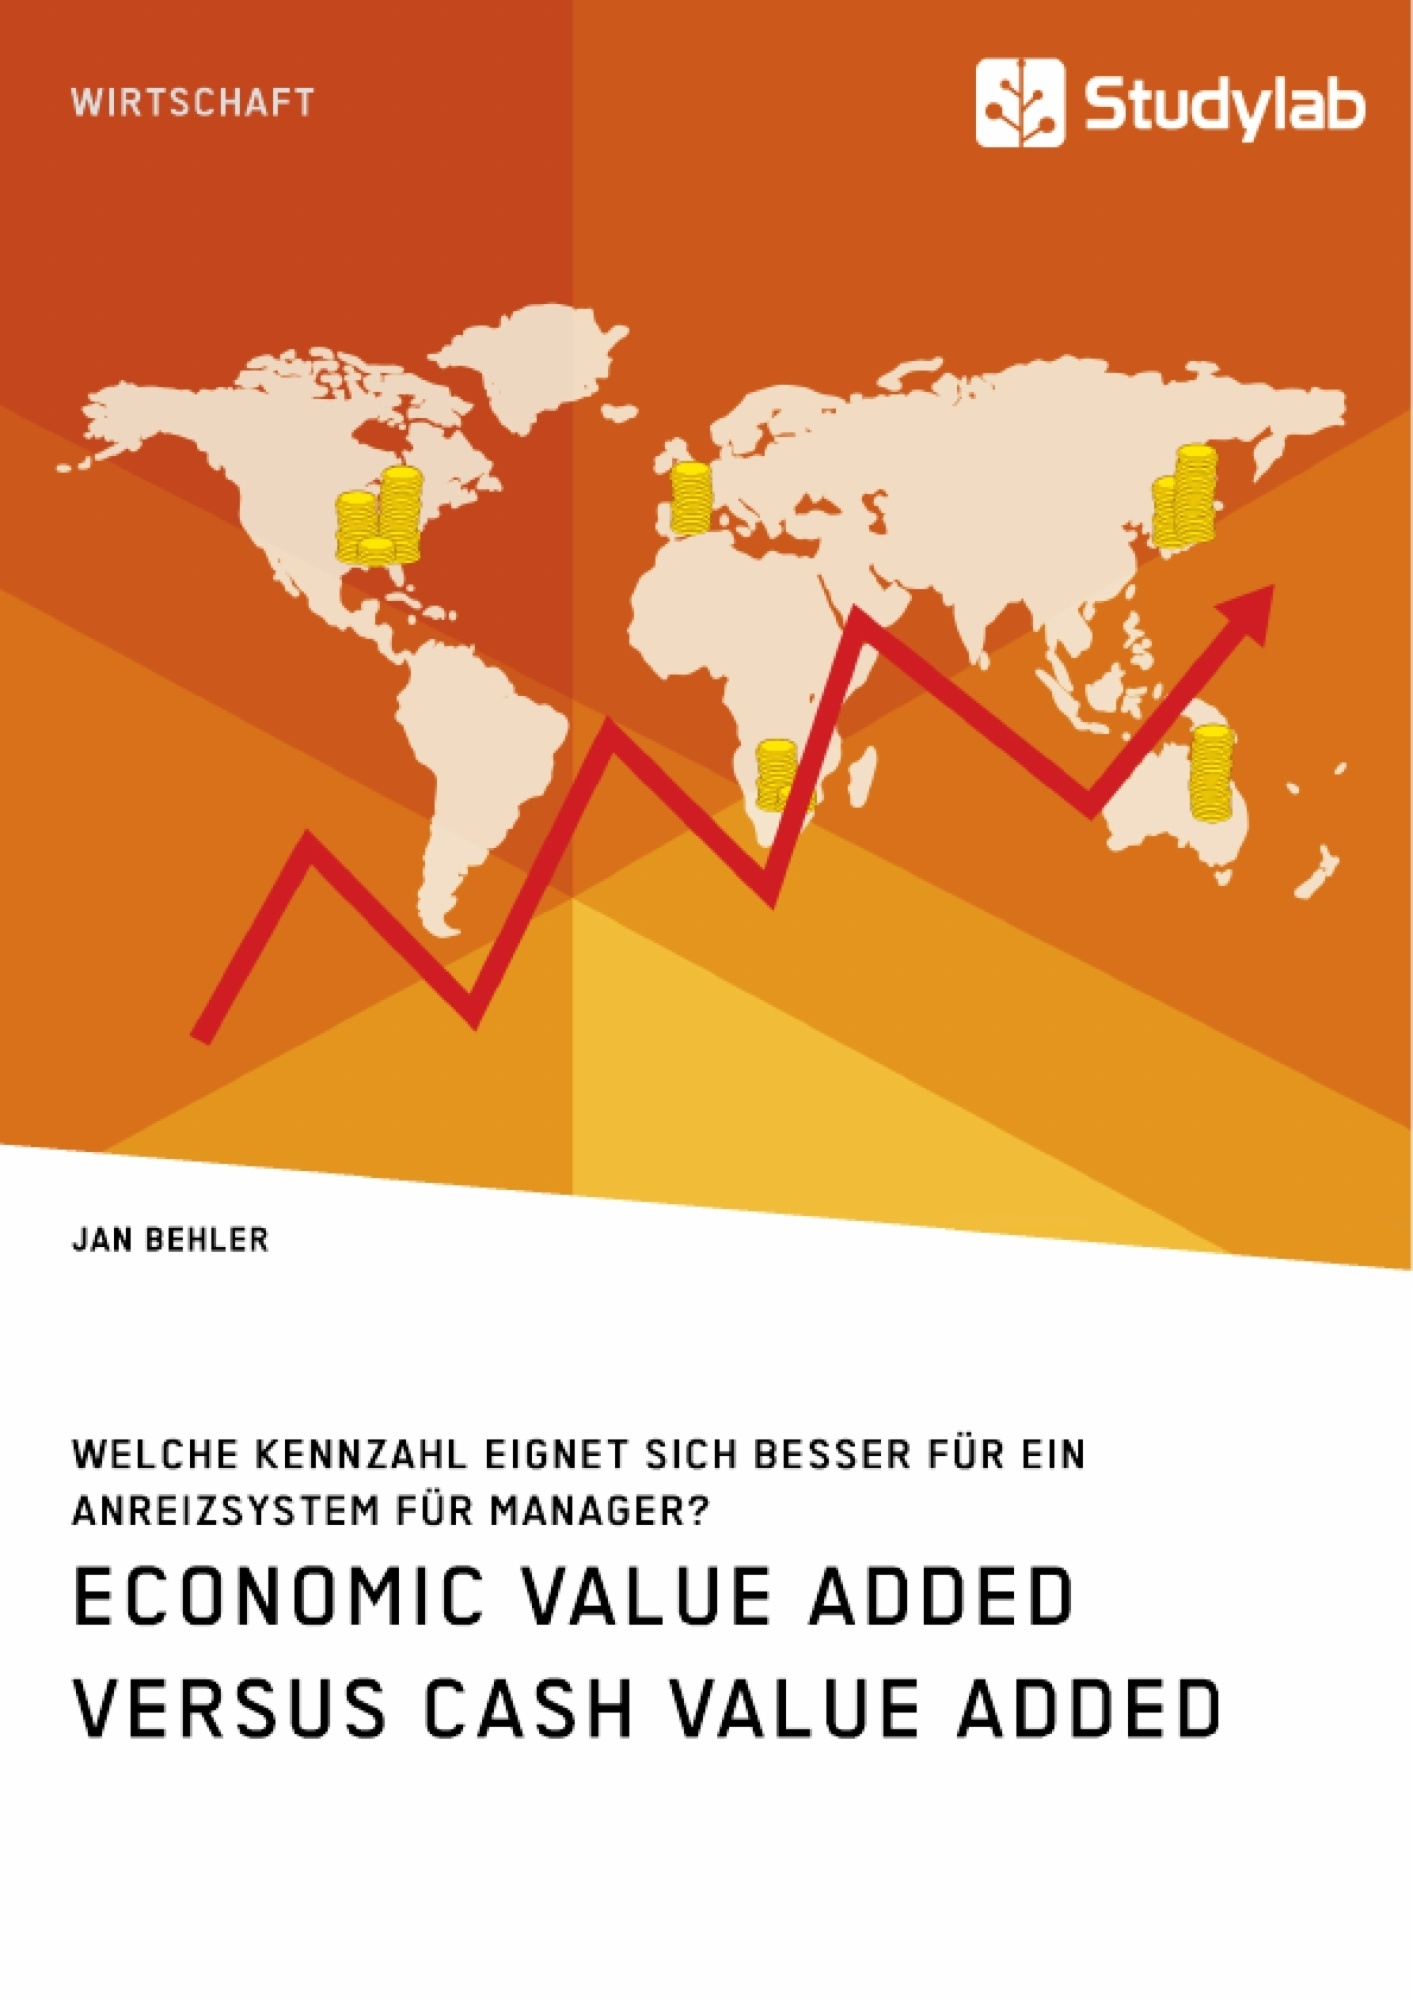 Titel: Economic Value Added versus Cash Value Added. Welche Kennzahl eignet sich besser für ein Anreizsystem für Manager?